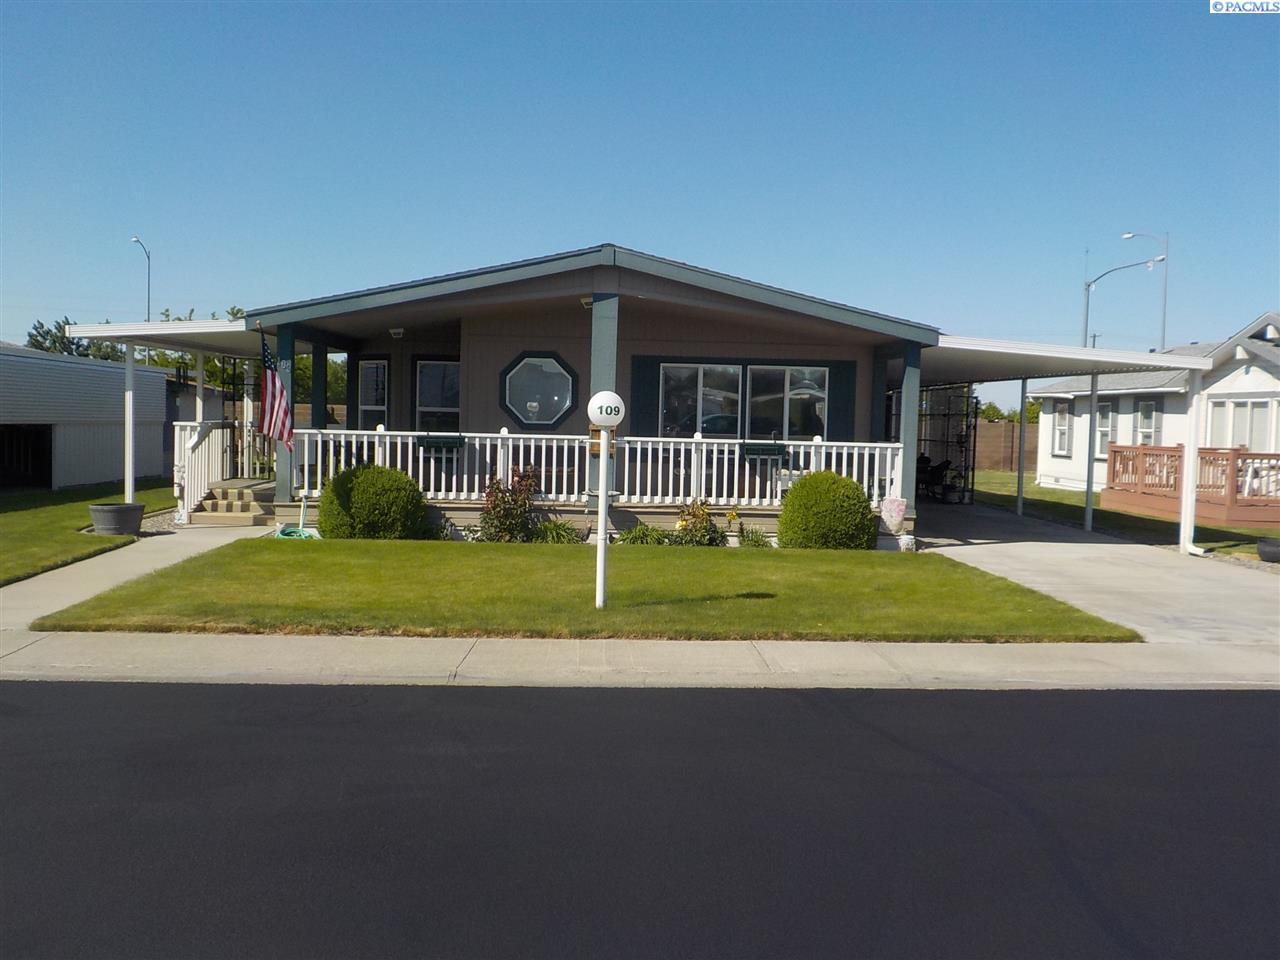 Manufactured Home for Sale at 312 S Columbia Center Blvd. Kennewick, Washington 33996 United States